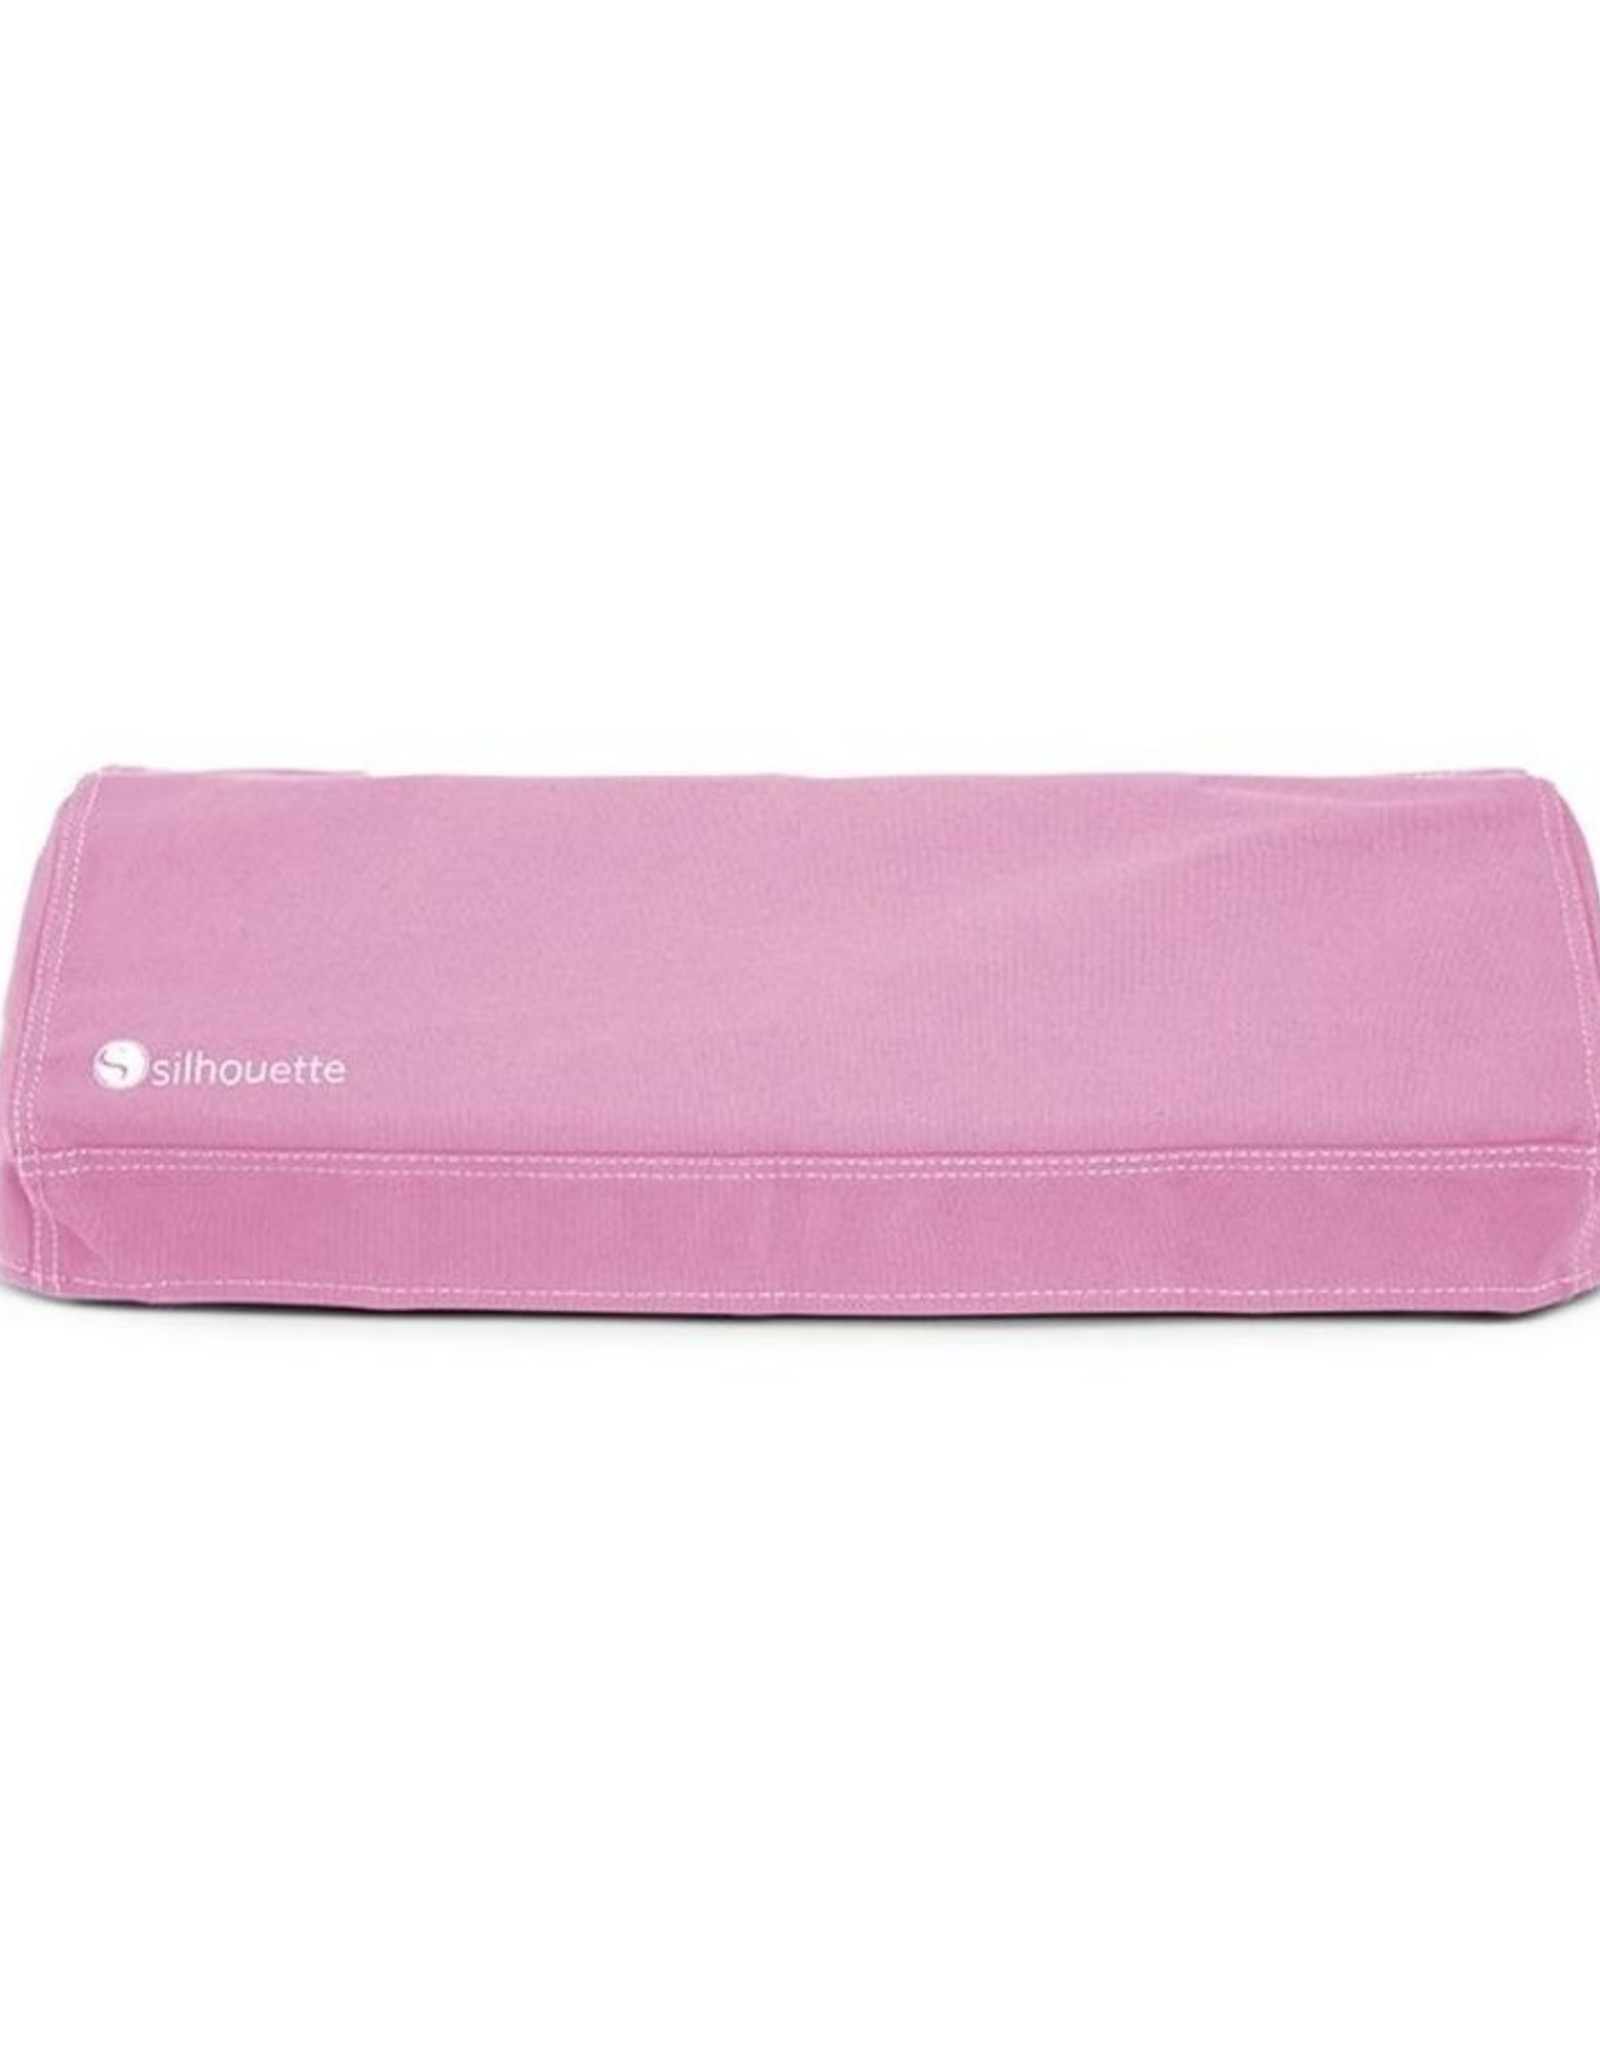 Cameo Silhouette Silhouette Cameo 4 dust cover roze